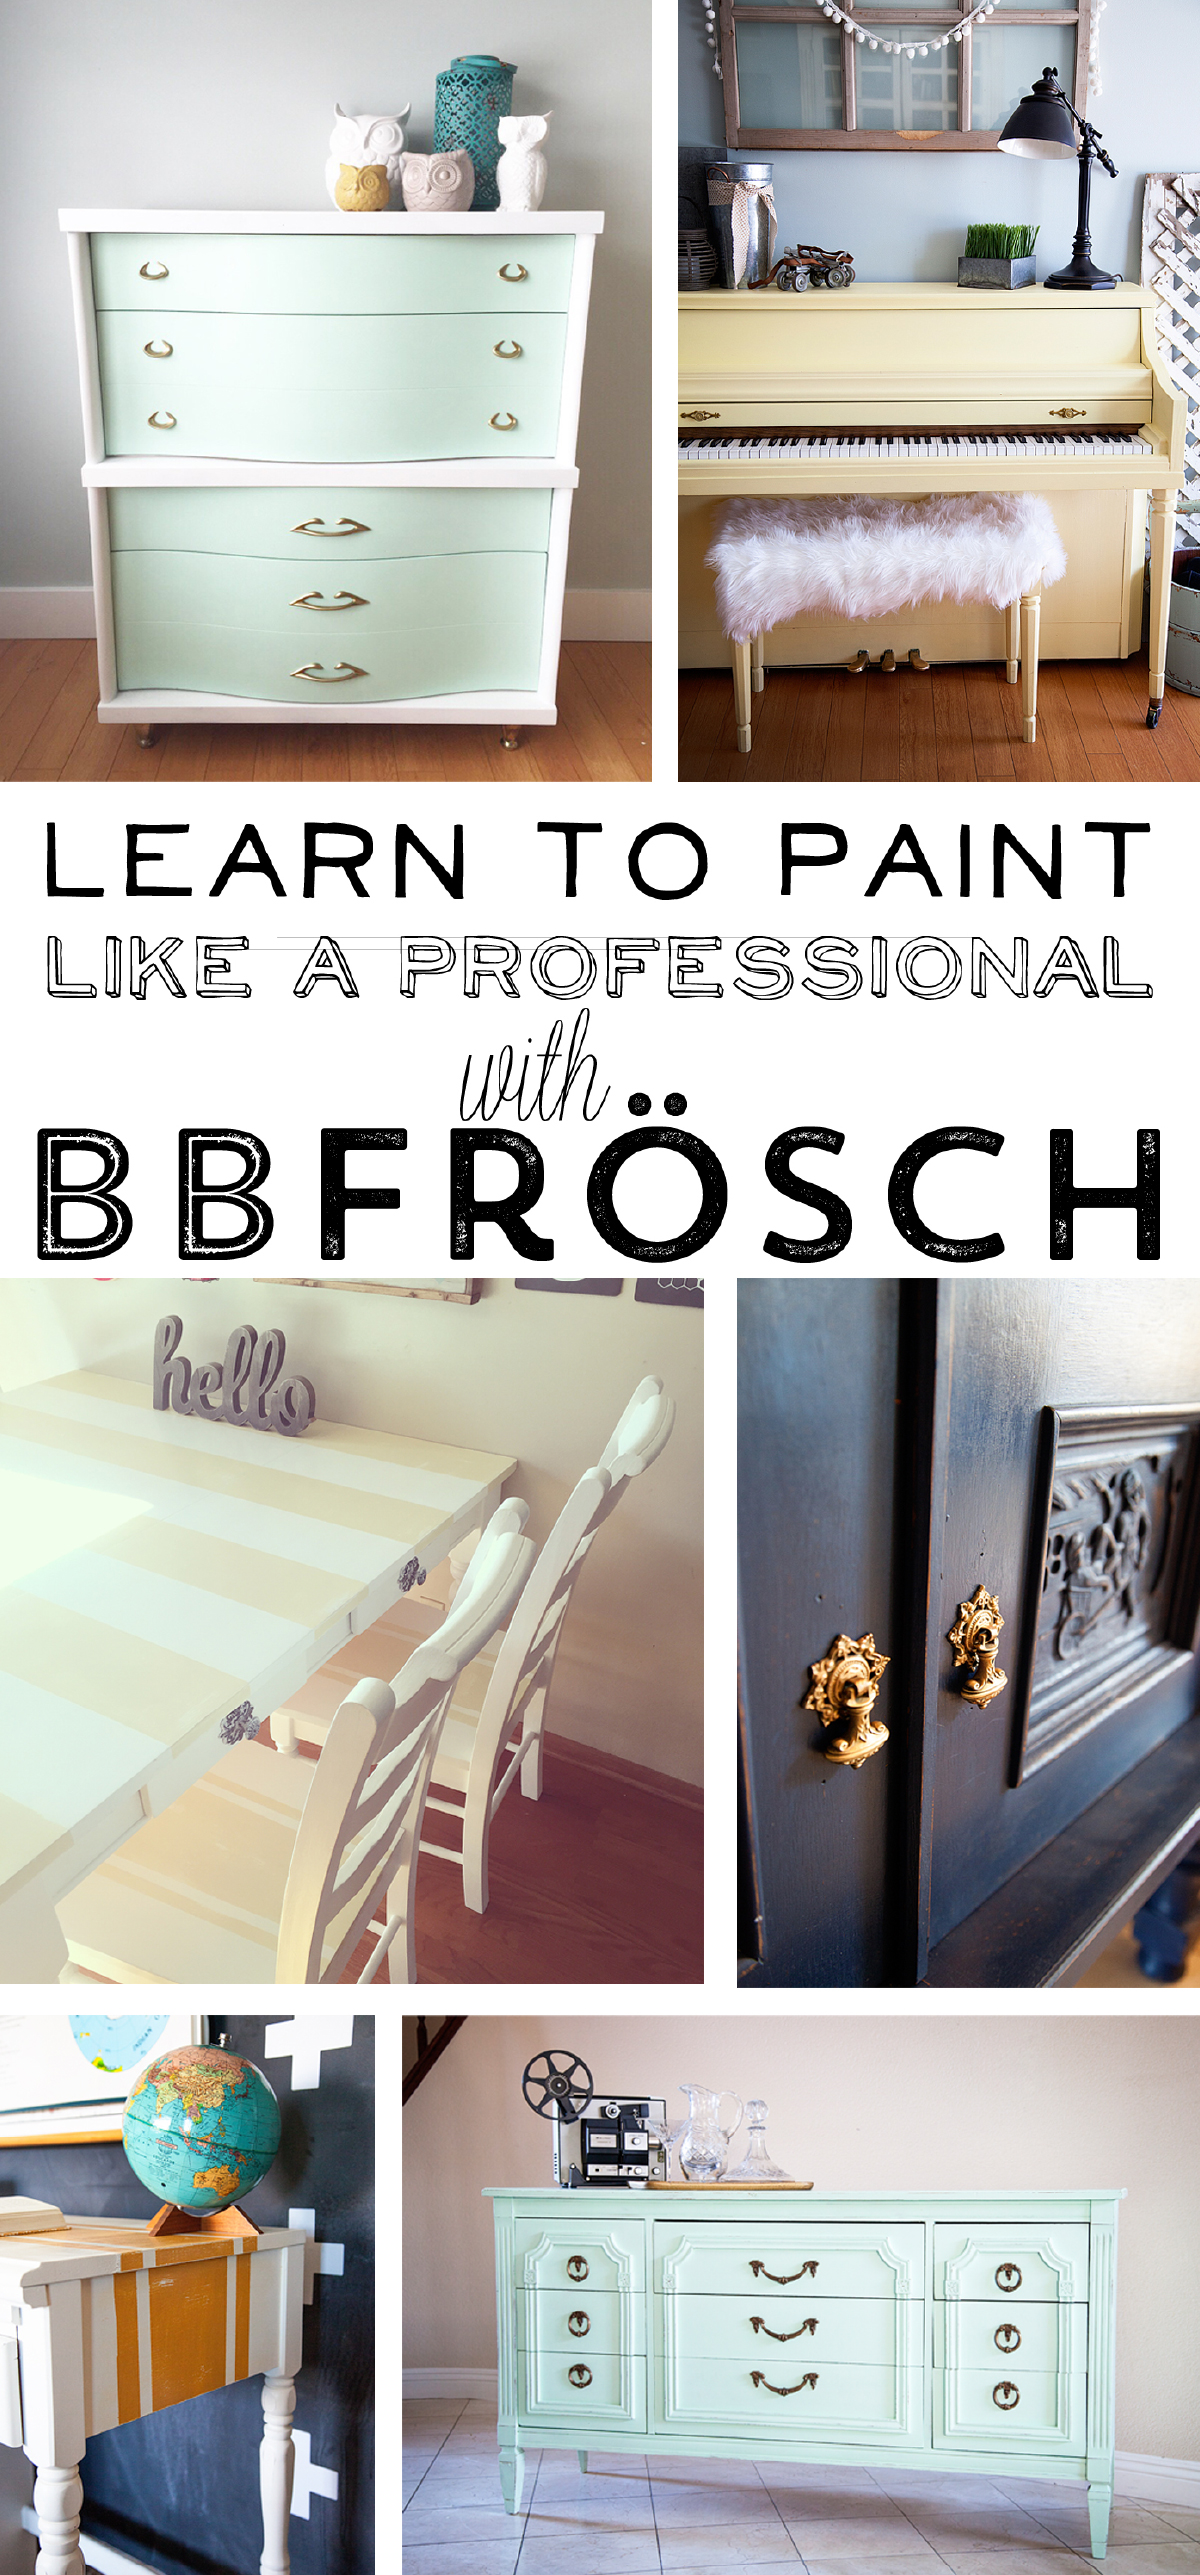 Learn-to-paint-like-a-pro-with-BB-Frosch